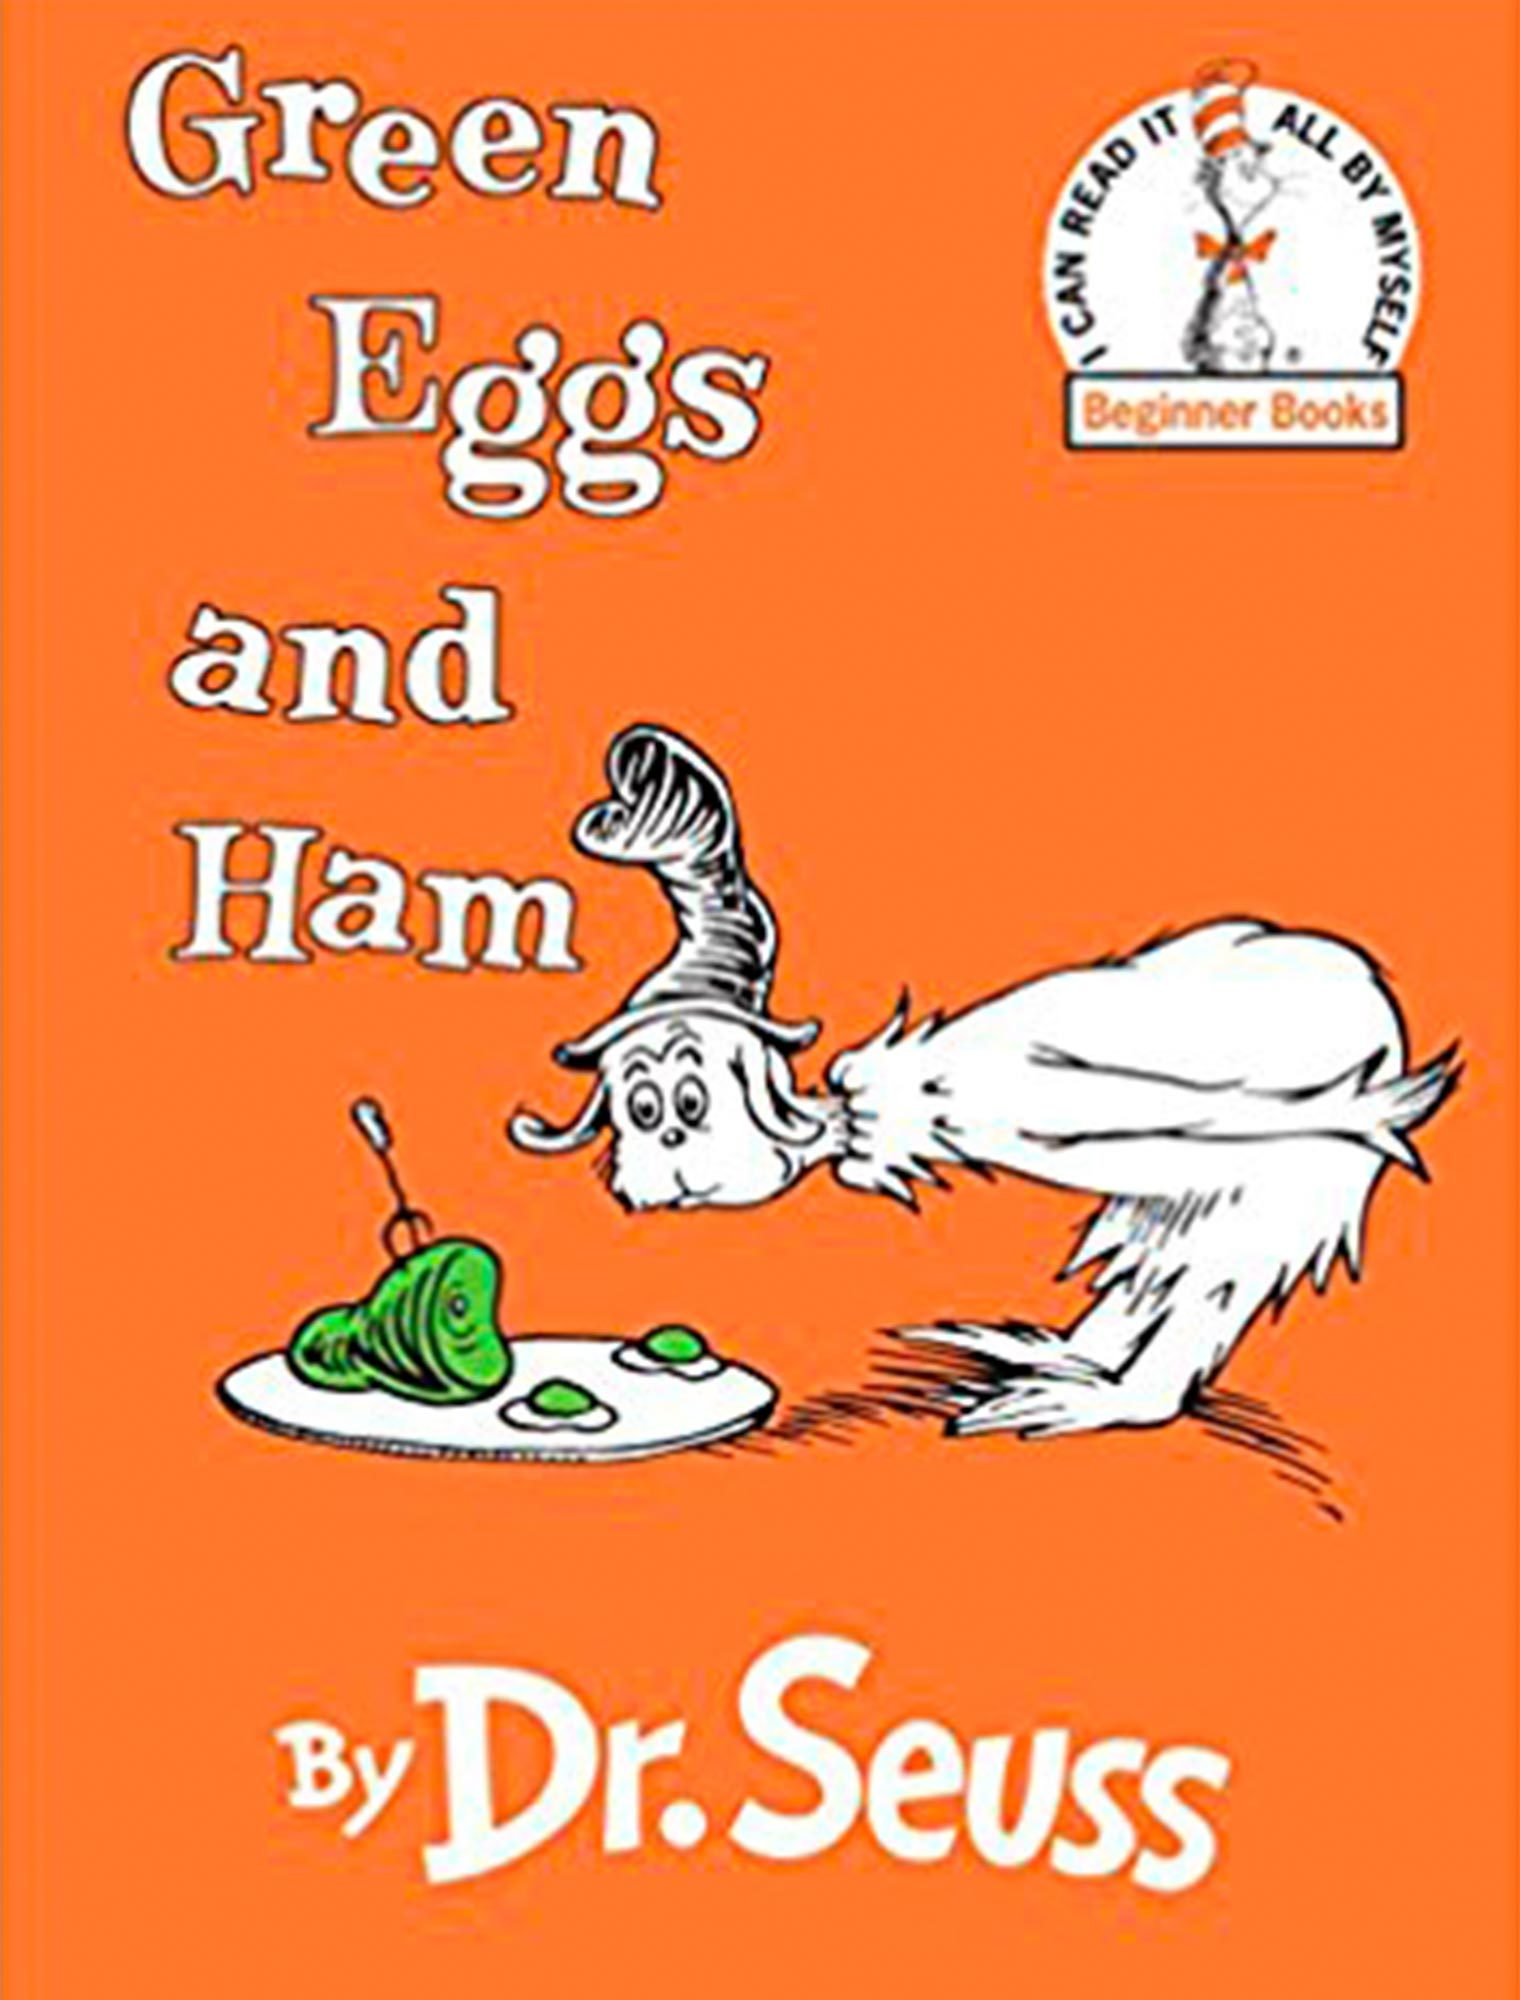 Green Eggs and Ham popular children's books